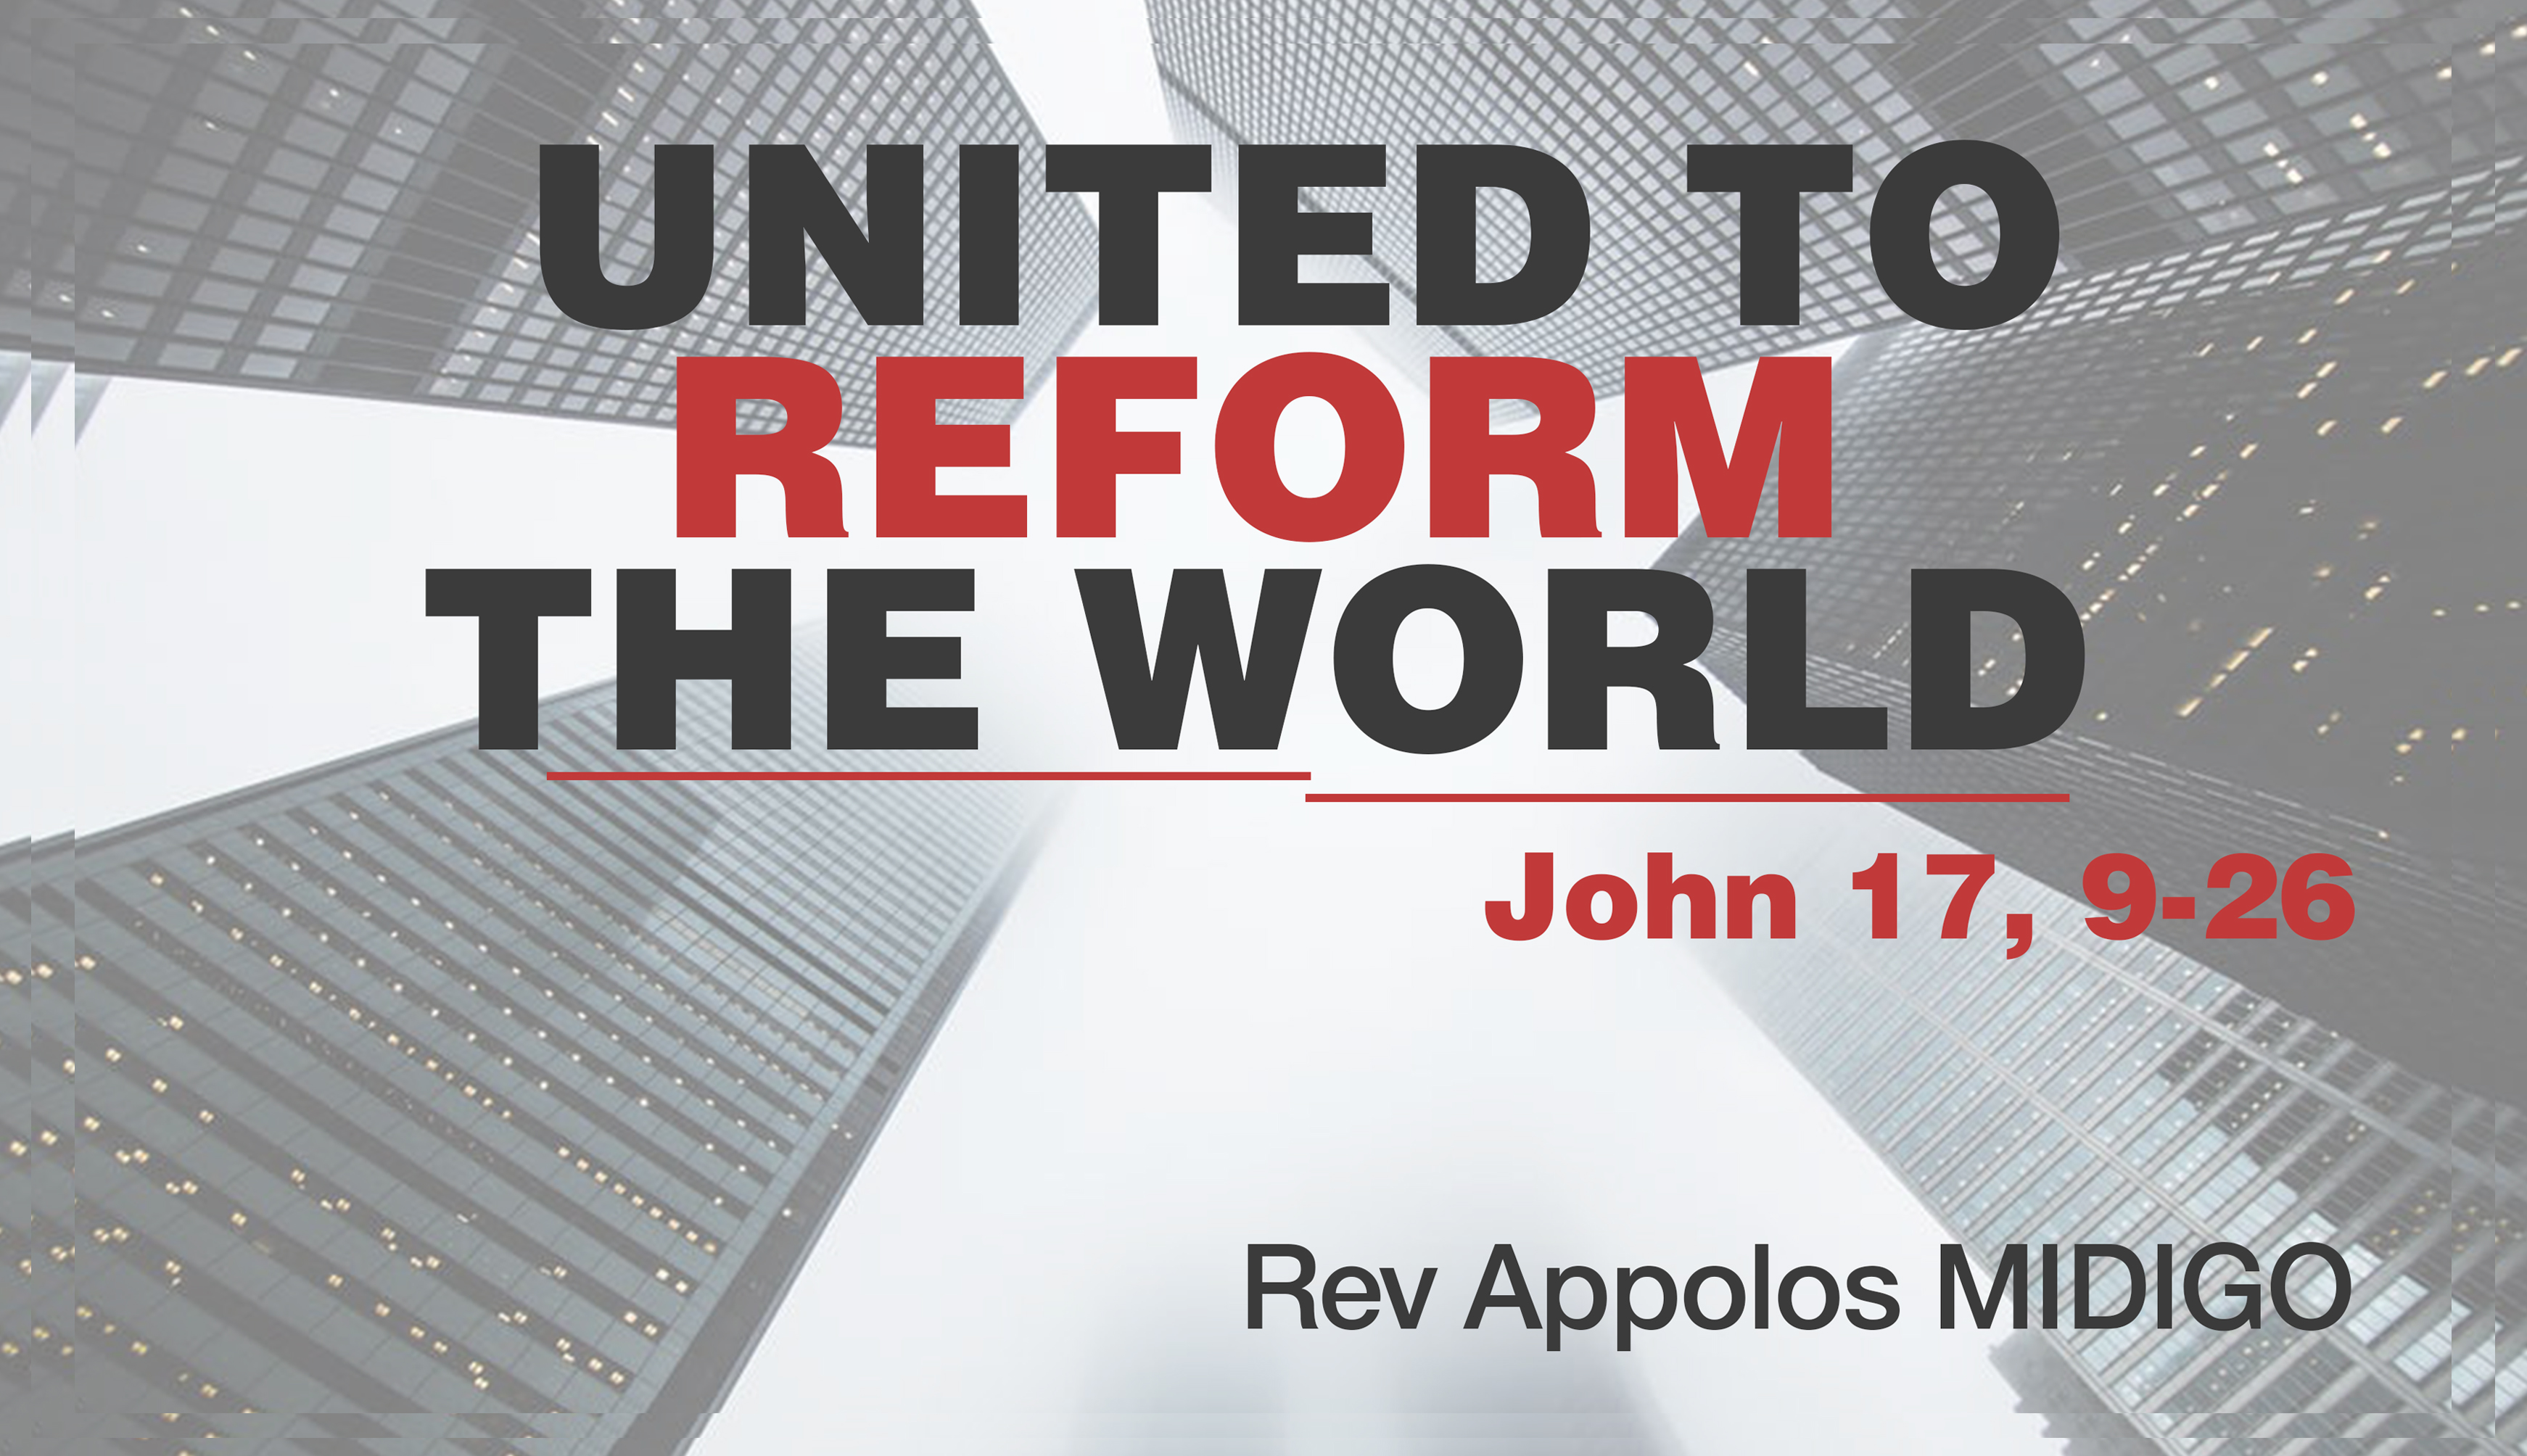 UNITED TO REFORM THE WORLD